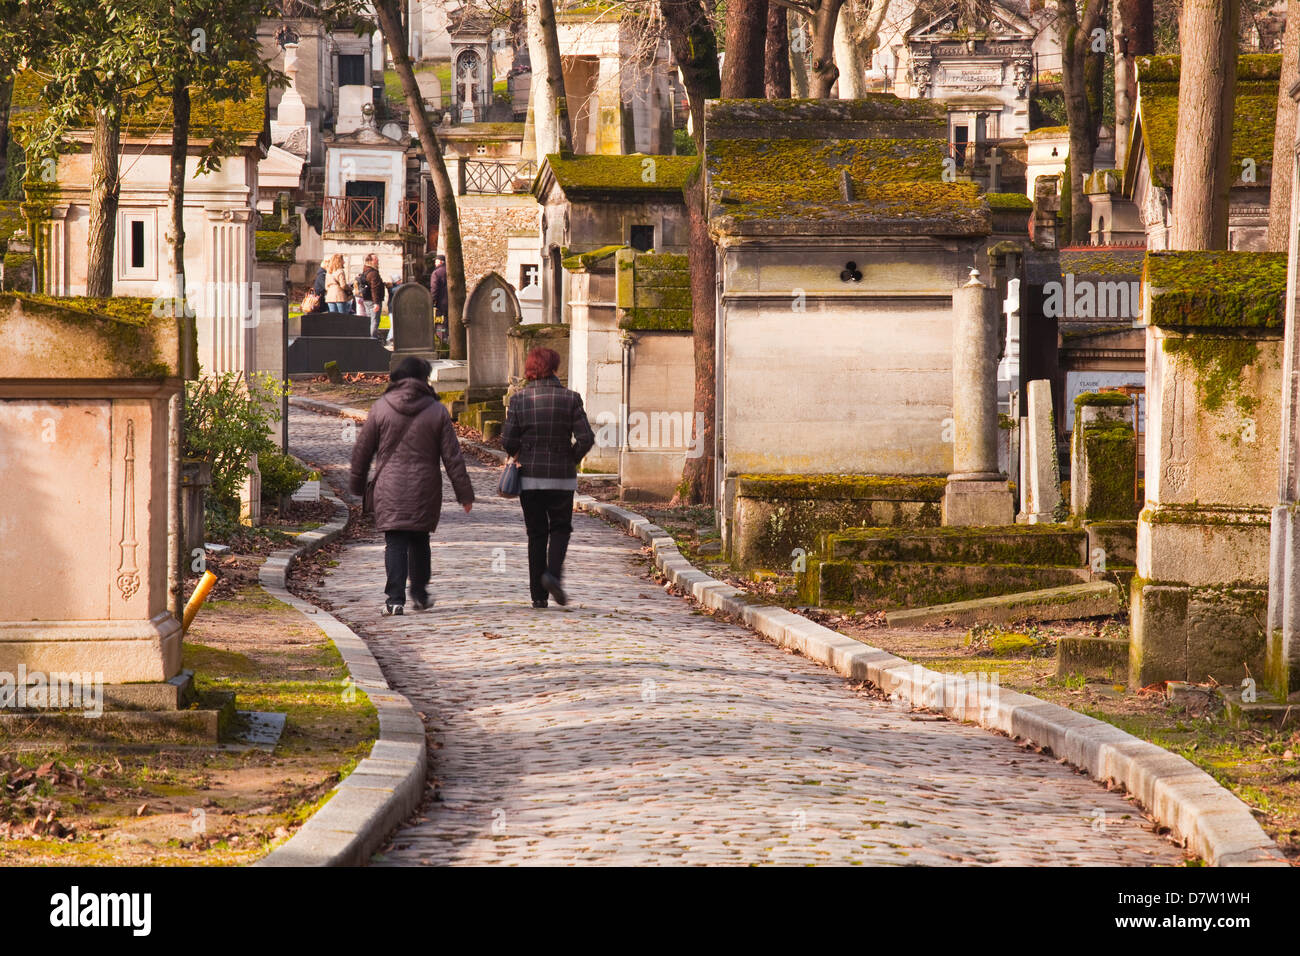 People walking past the gravestones of Pere Lachaise cemetery, Paris, France - Stock Image